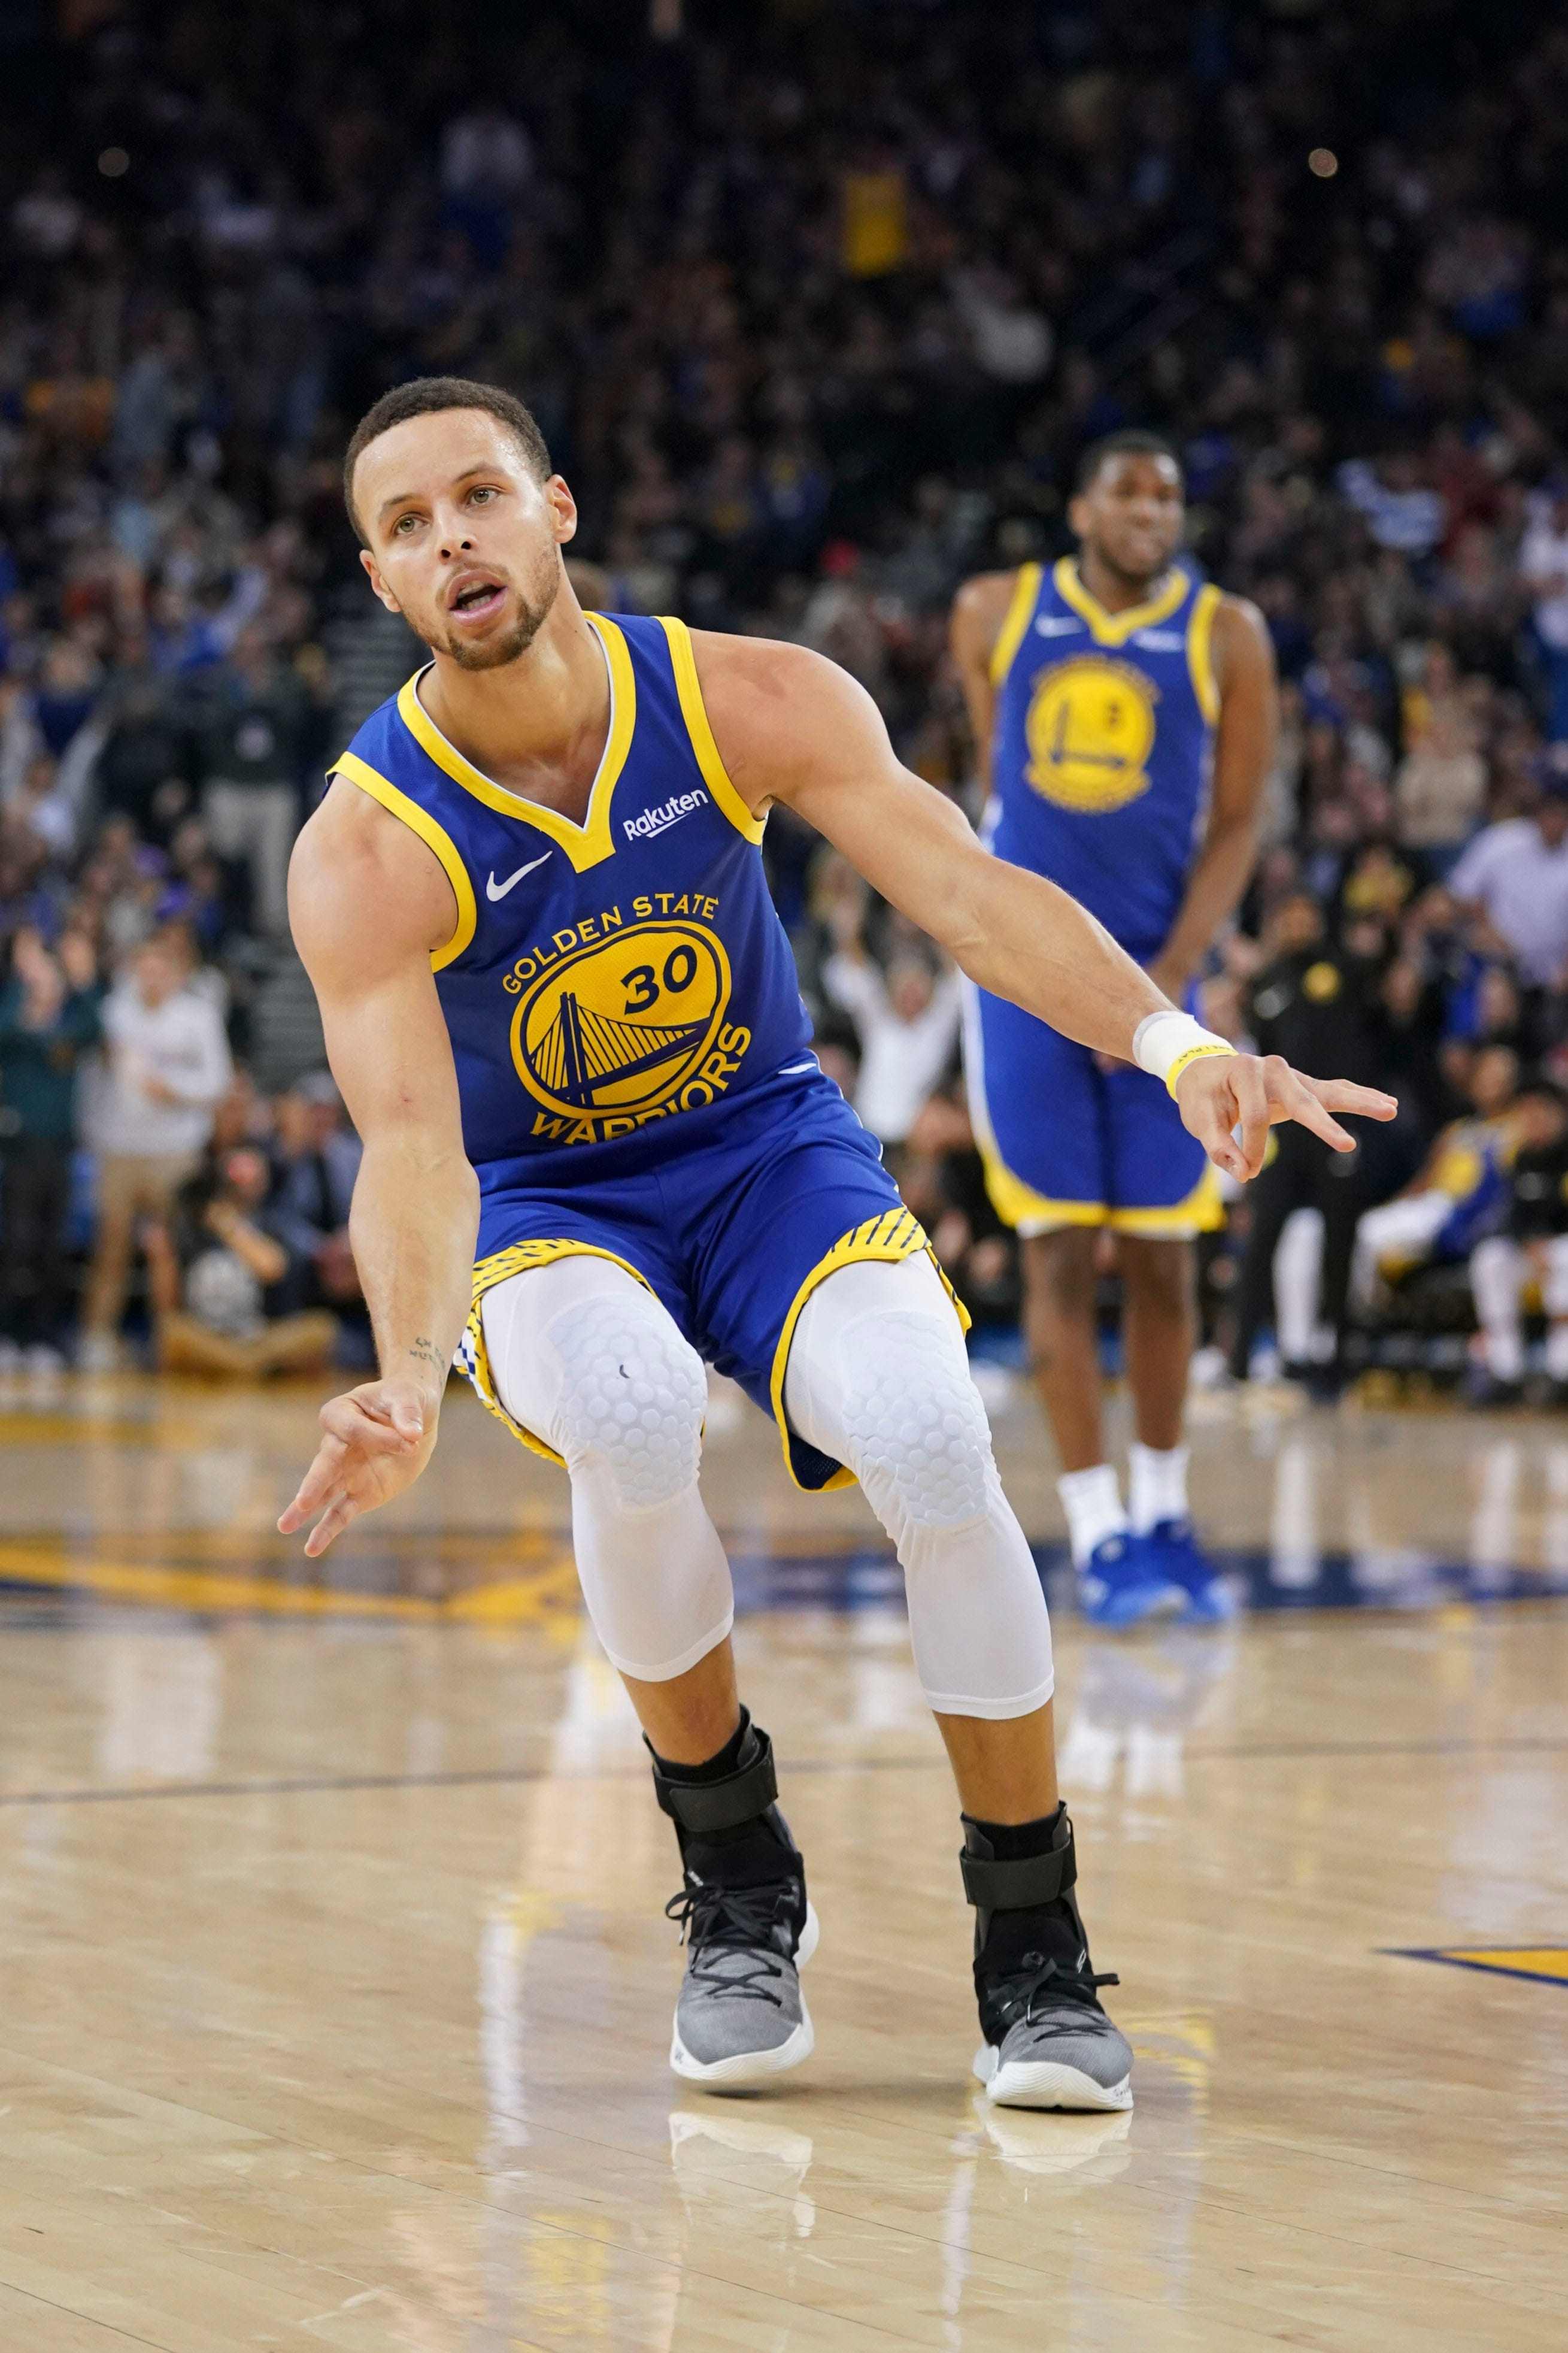 42d211ef2ba NASA invites Stephen Curry to facility after he doubts moon landings